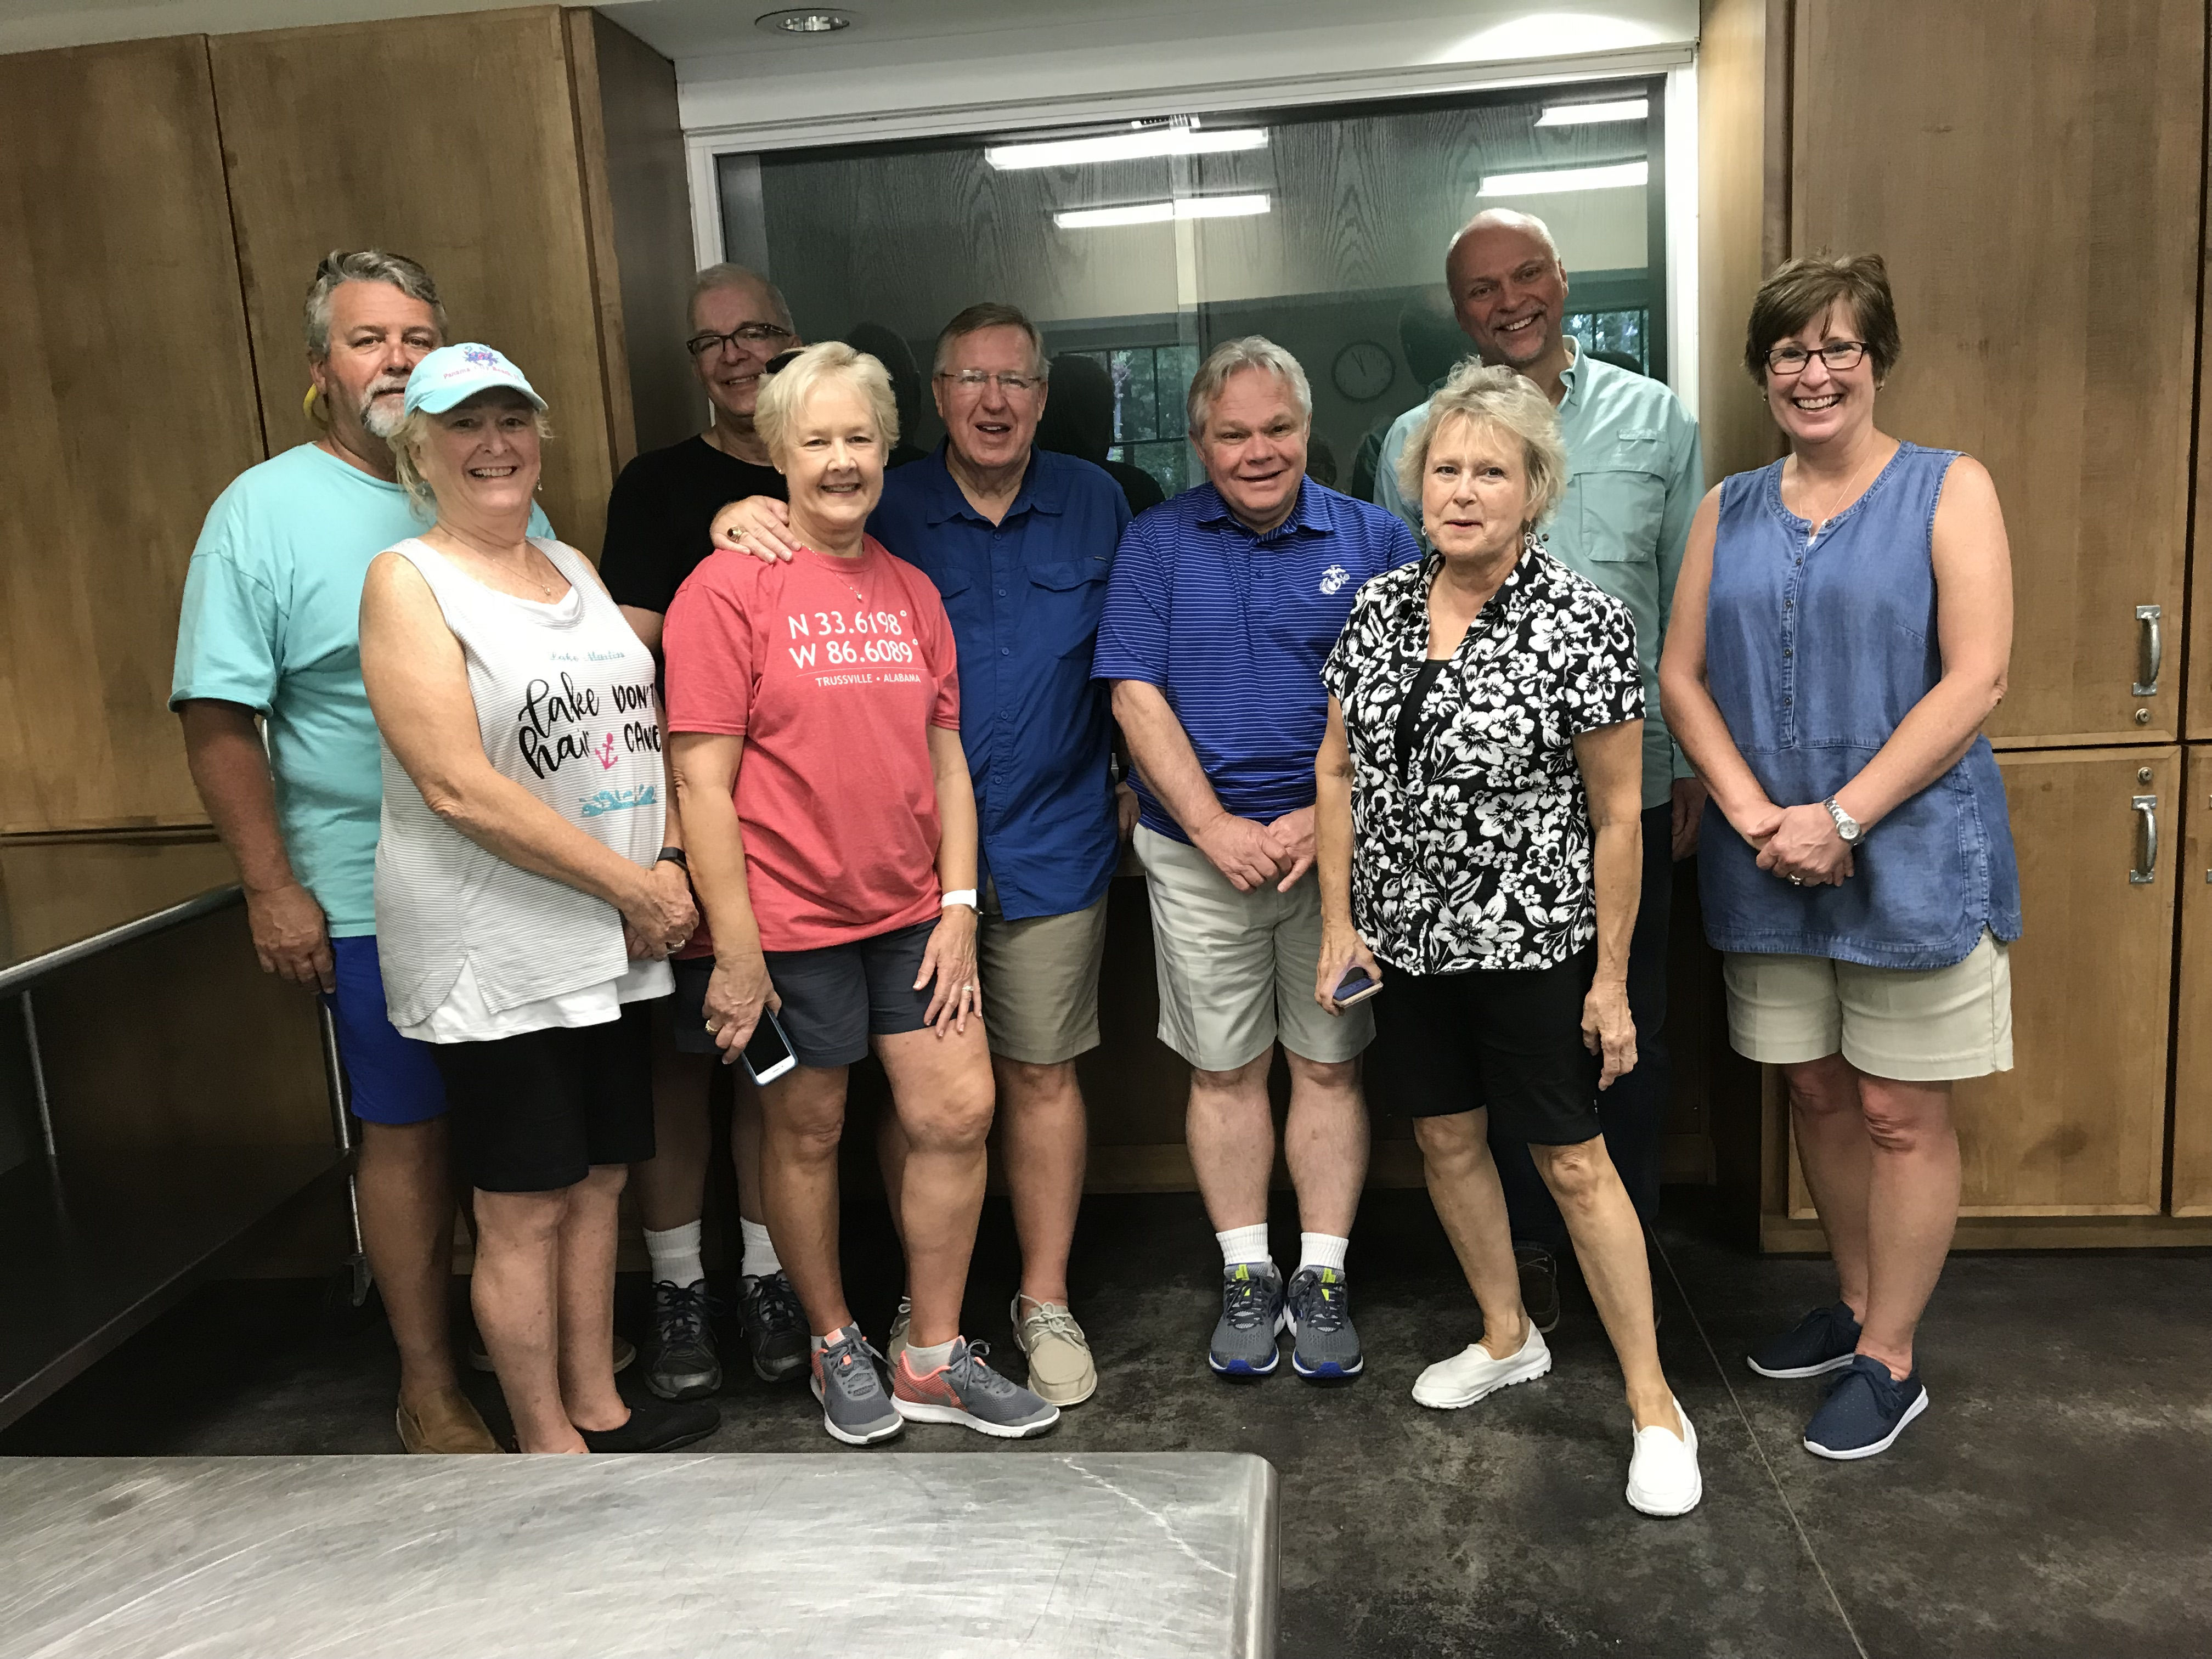 Trussville Rotary Club visit Smile-A-Mile, prepare lunch for young cancer survivors